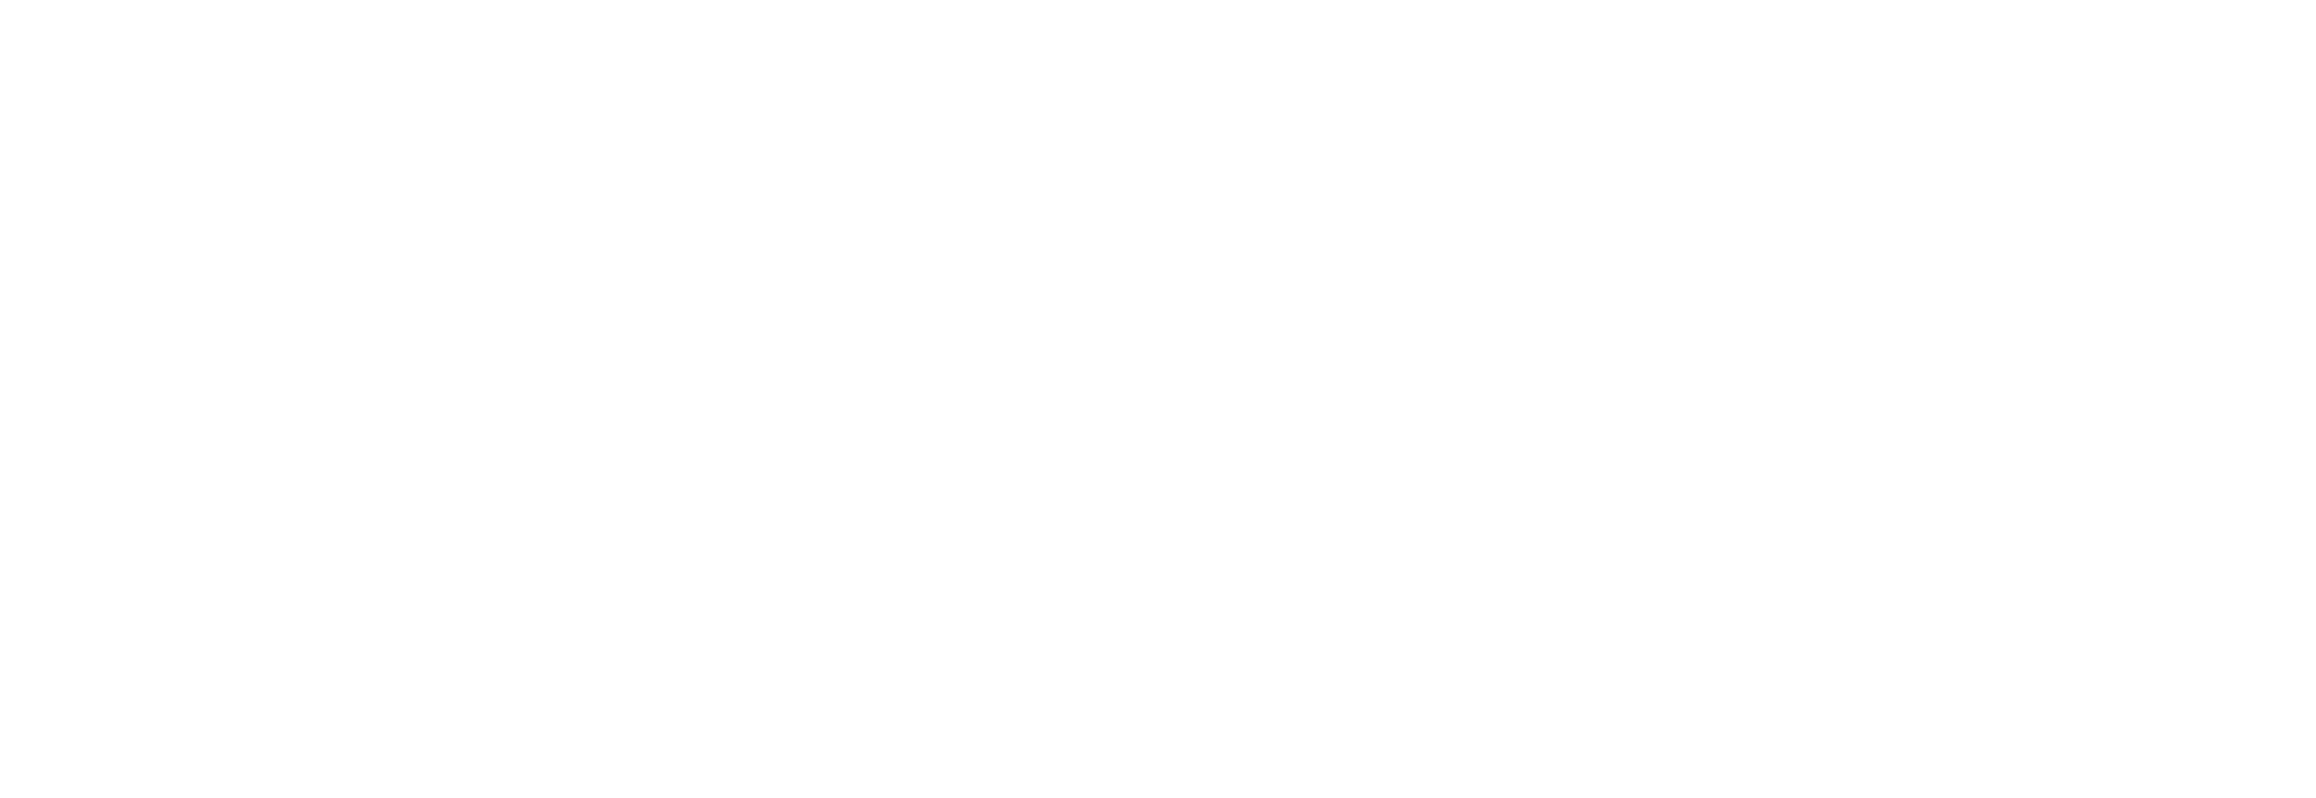 building land technology white logo